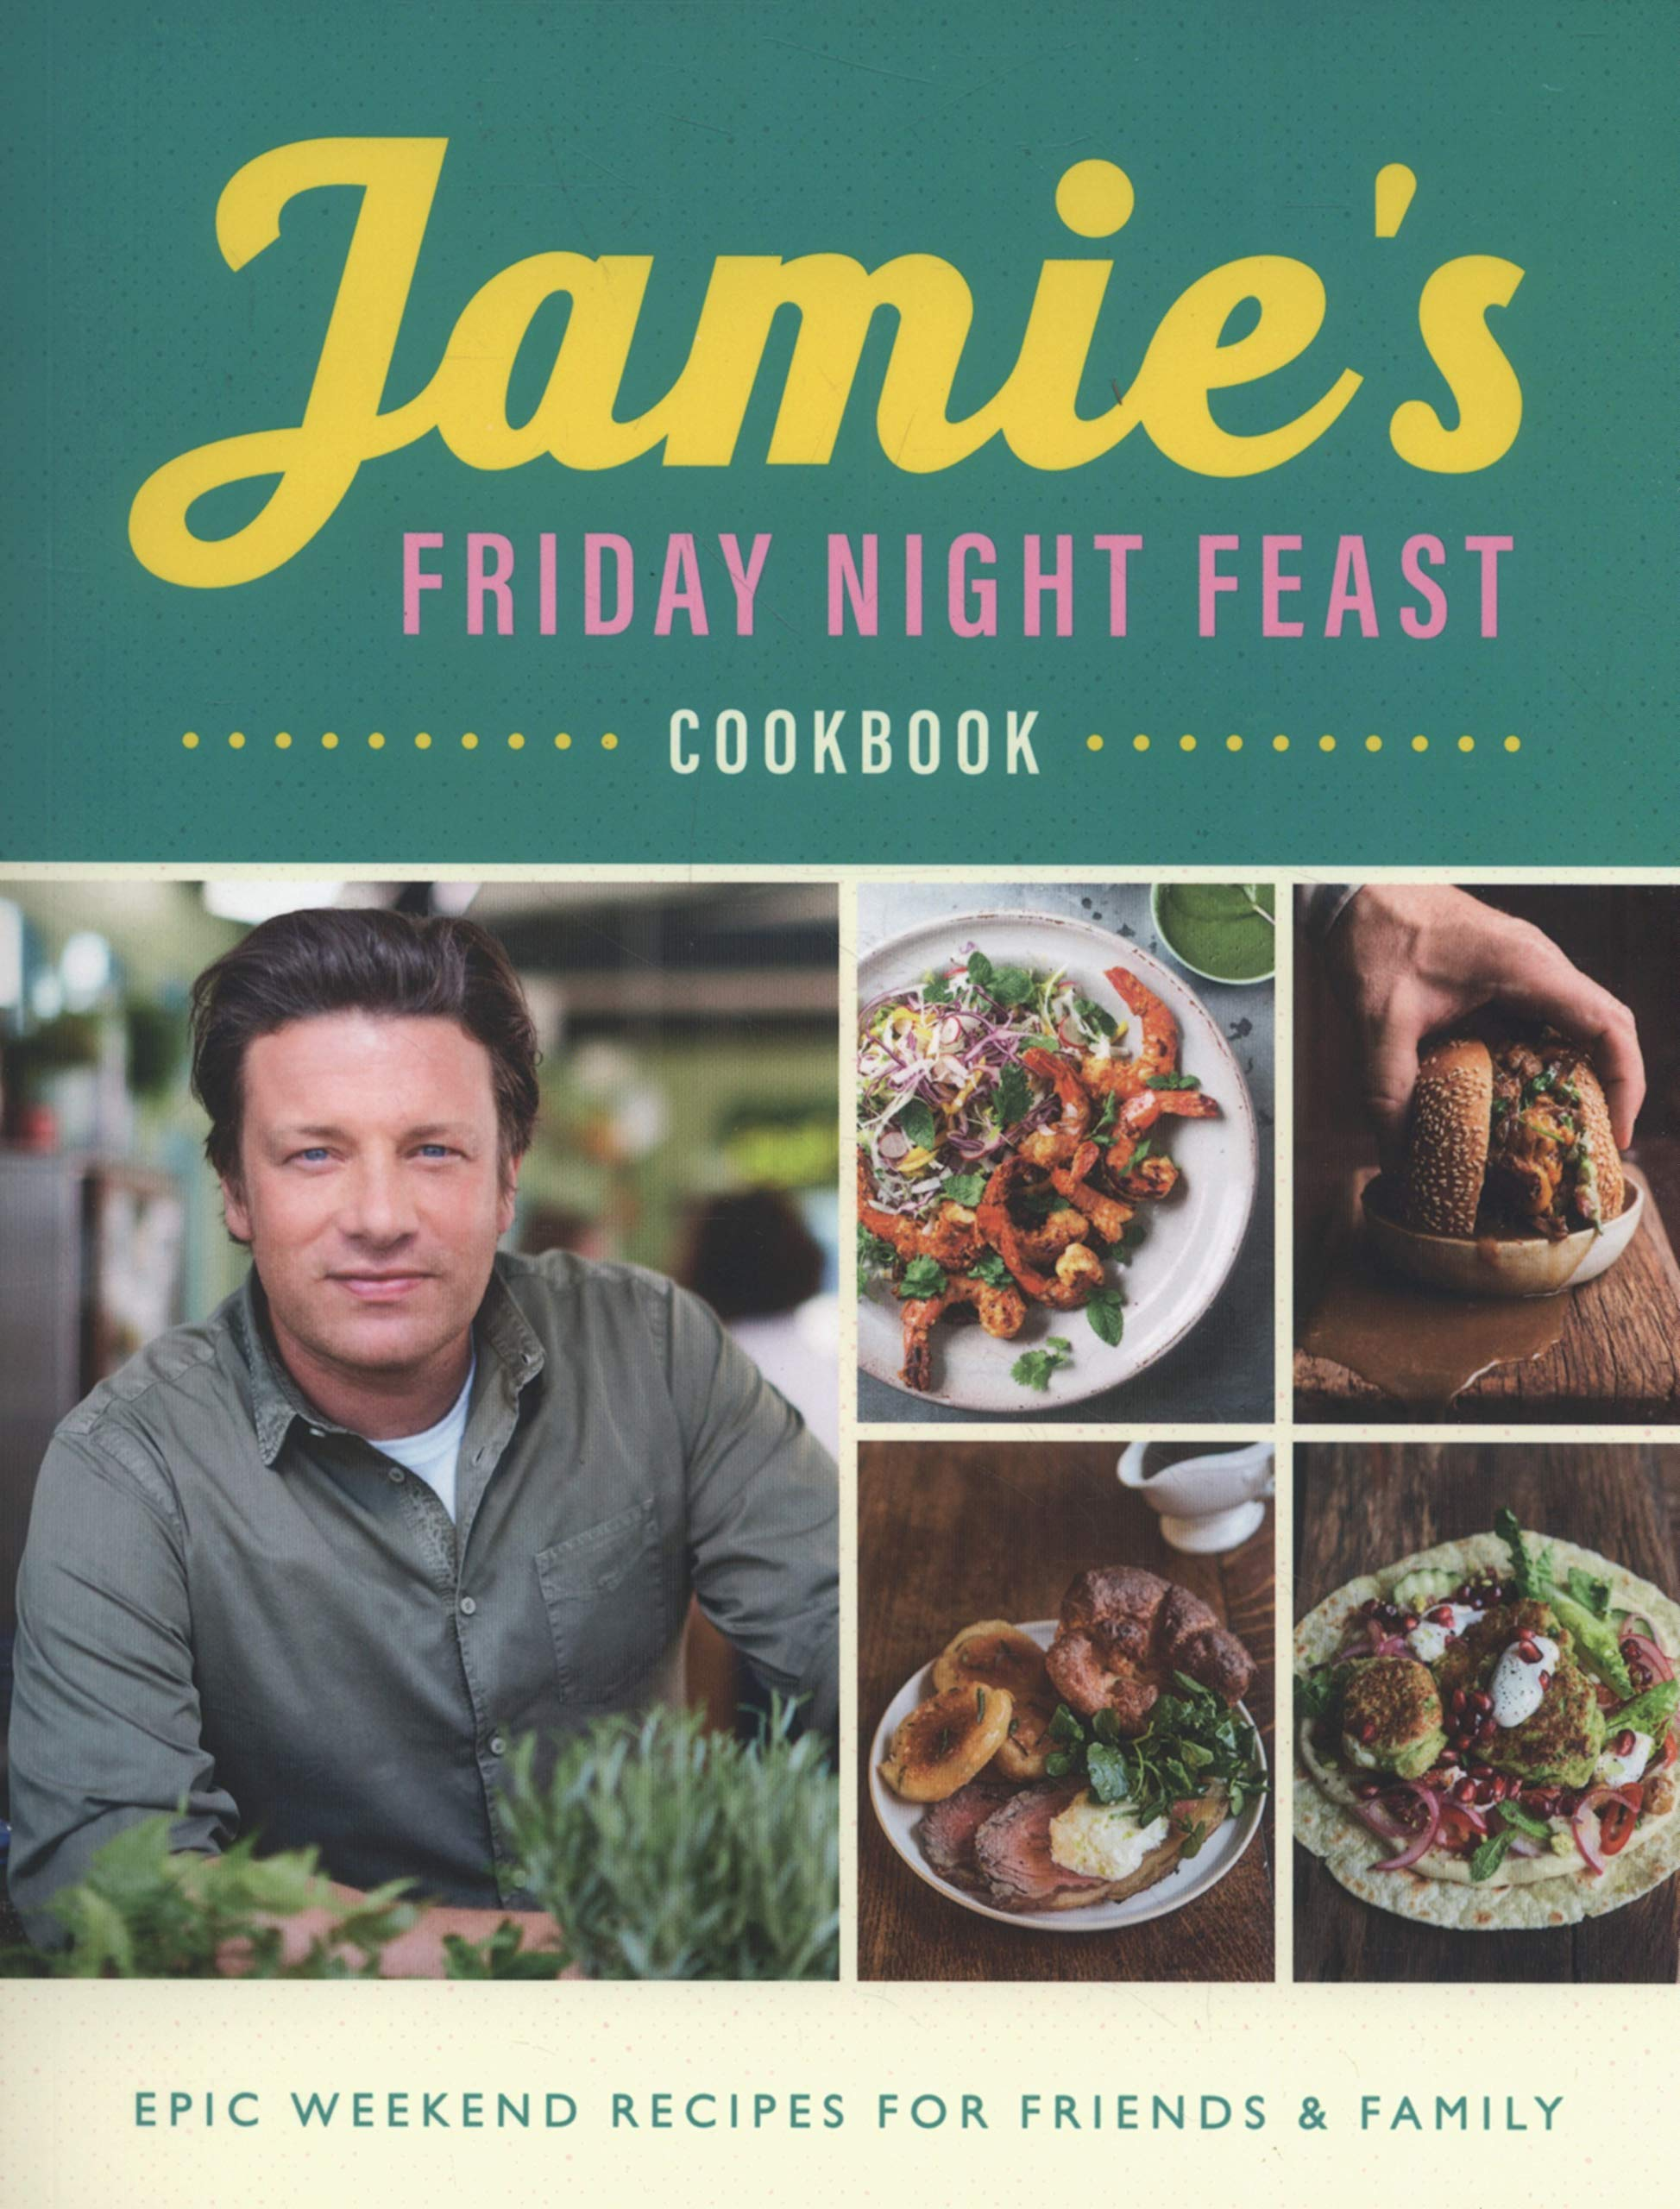 Jamie's Friday Night Feast Cookbook thumbnail